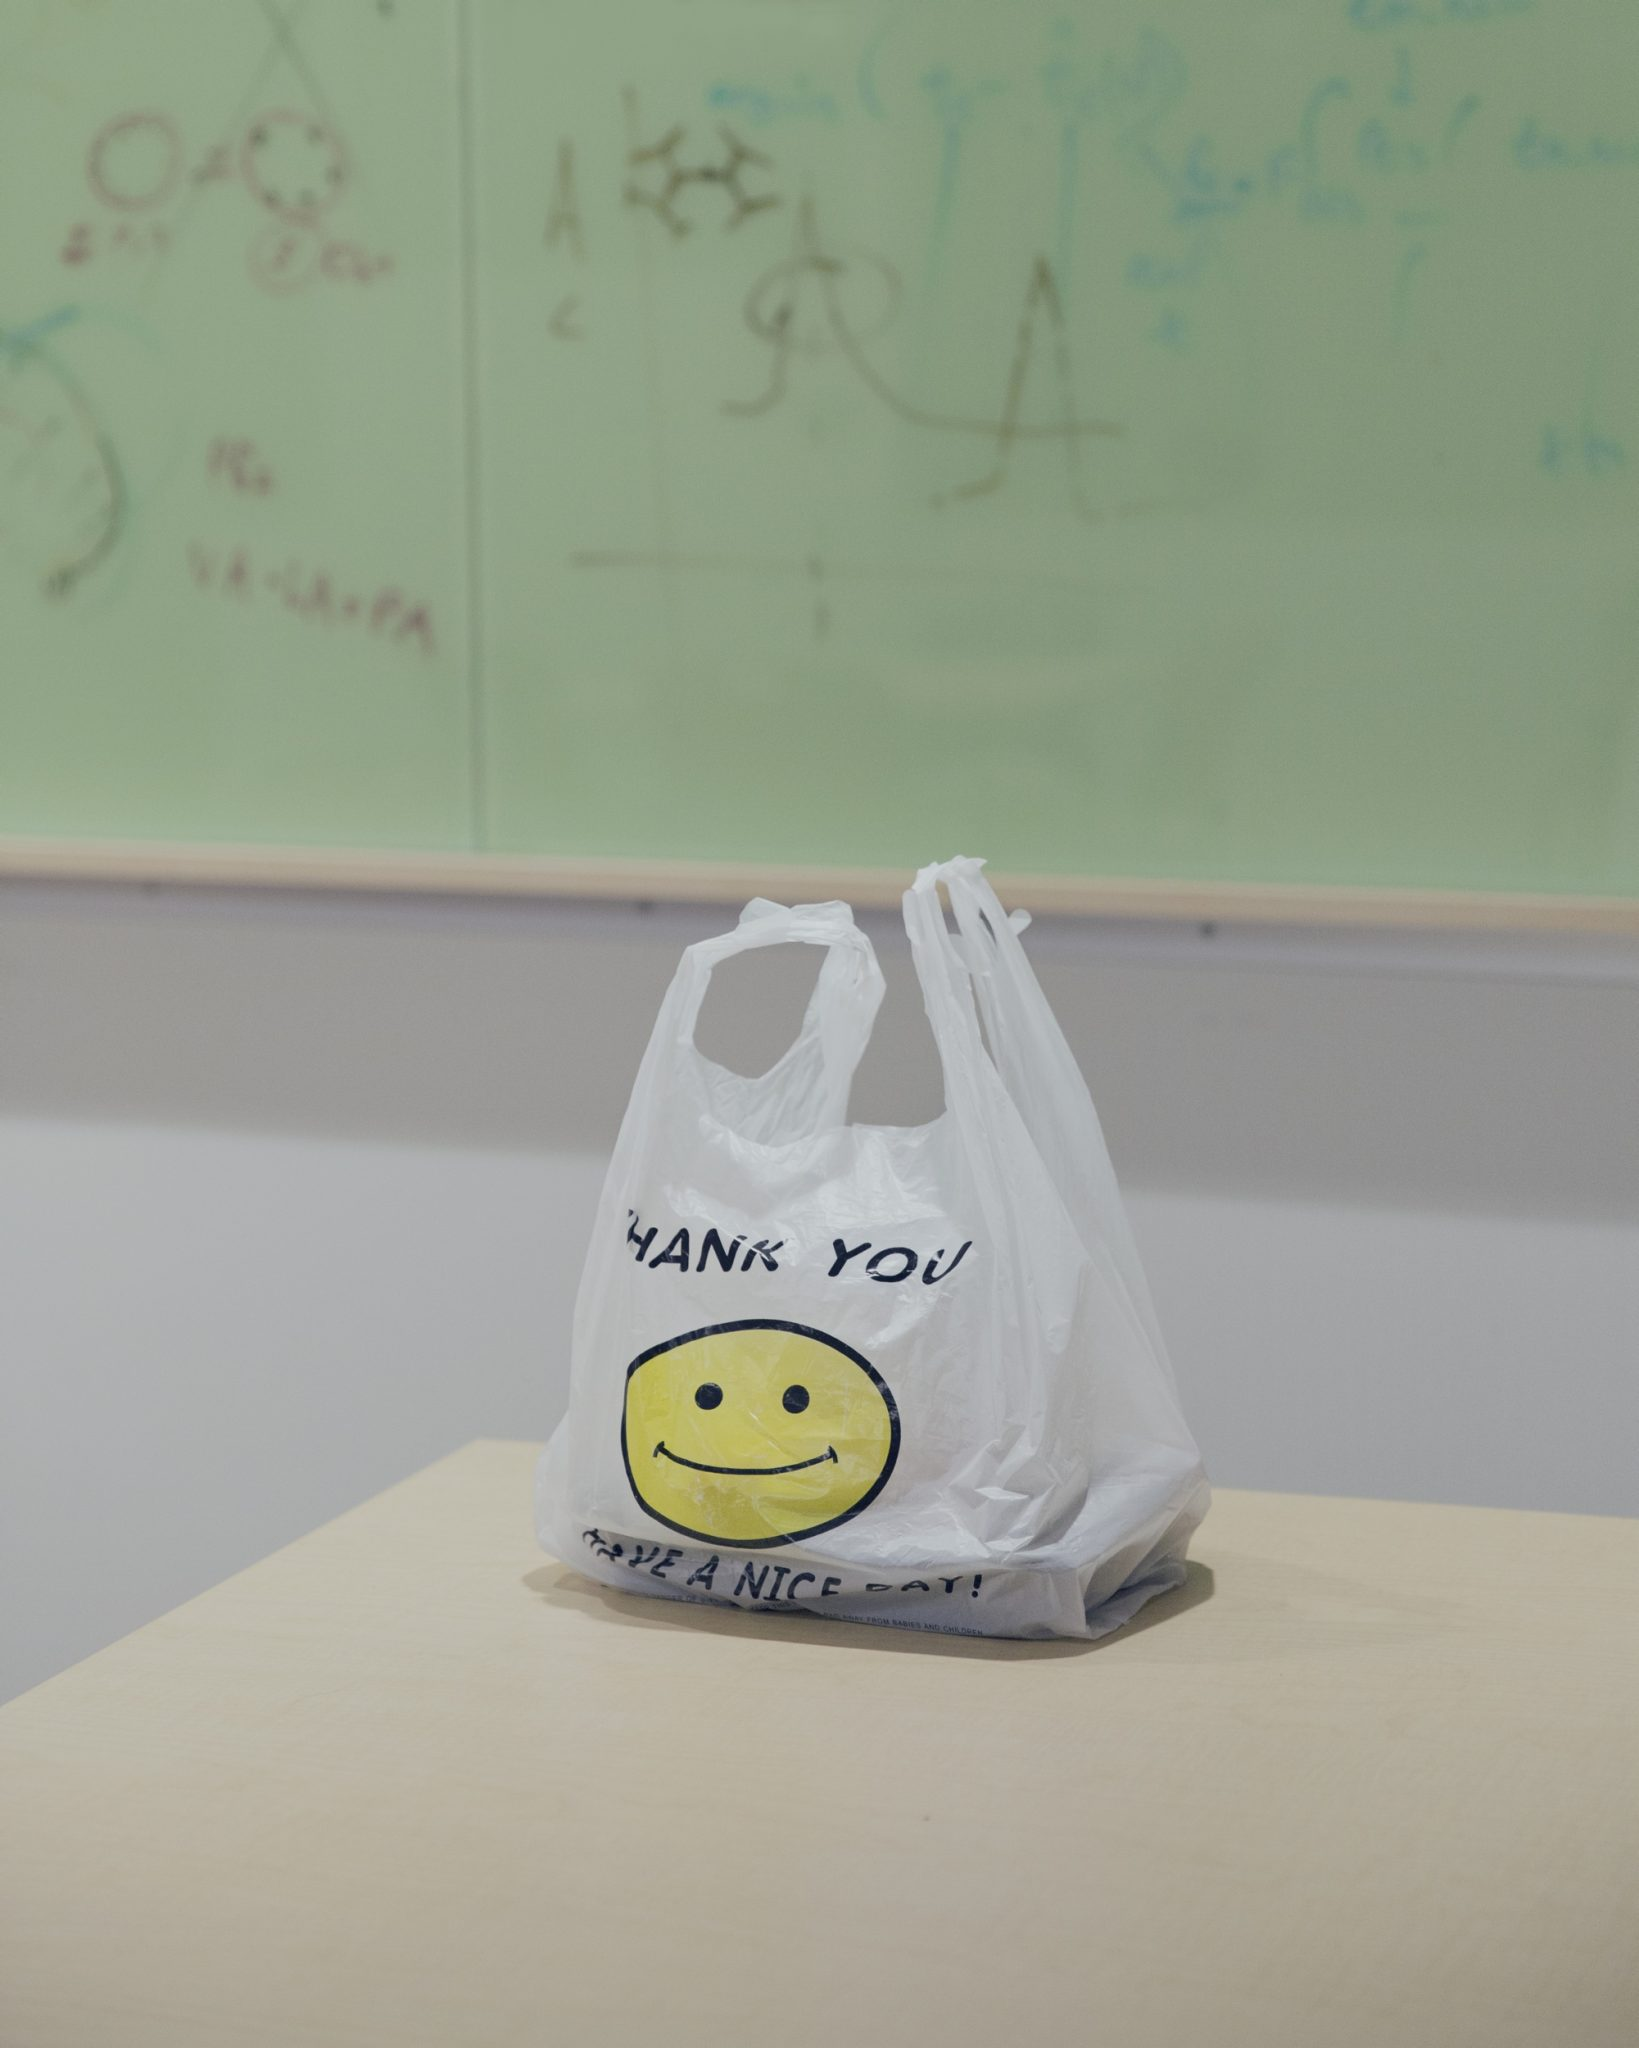 A food bag in a conference room. Massachusetts Institute of Technology, Cambridge, USA, 2017